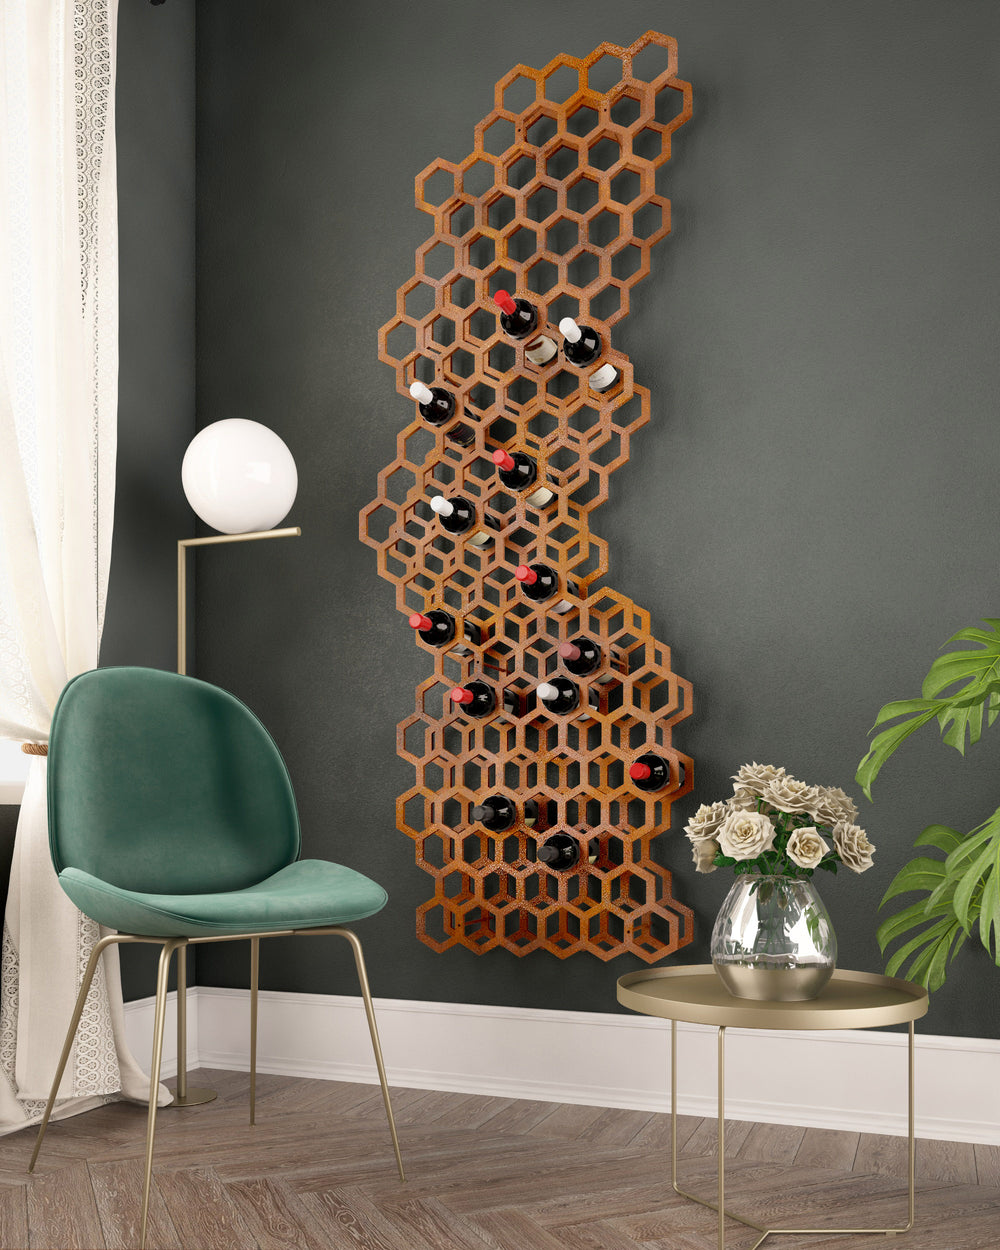 The Hive wine display